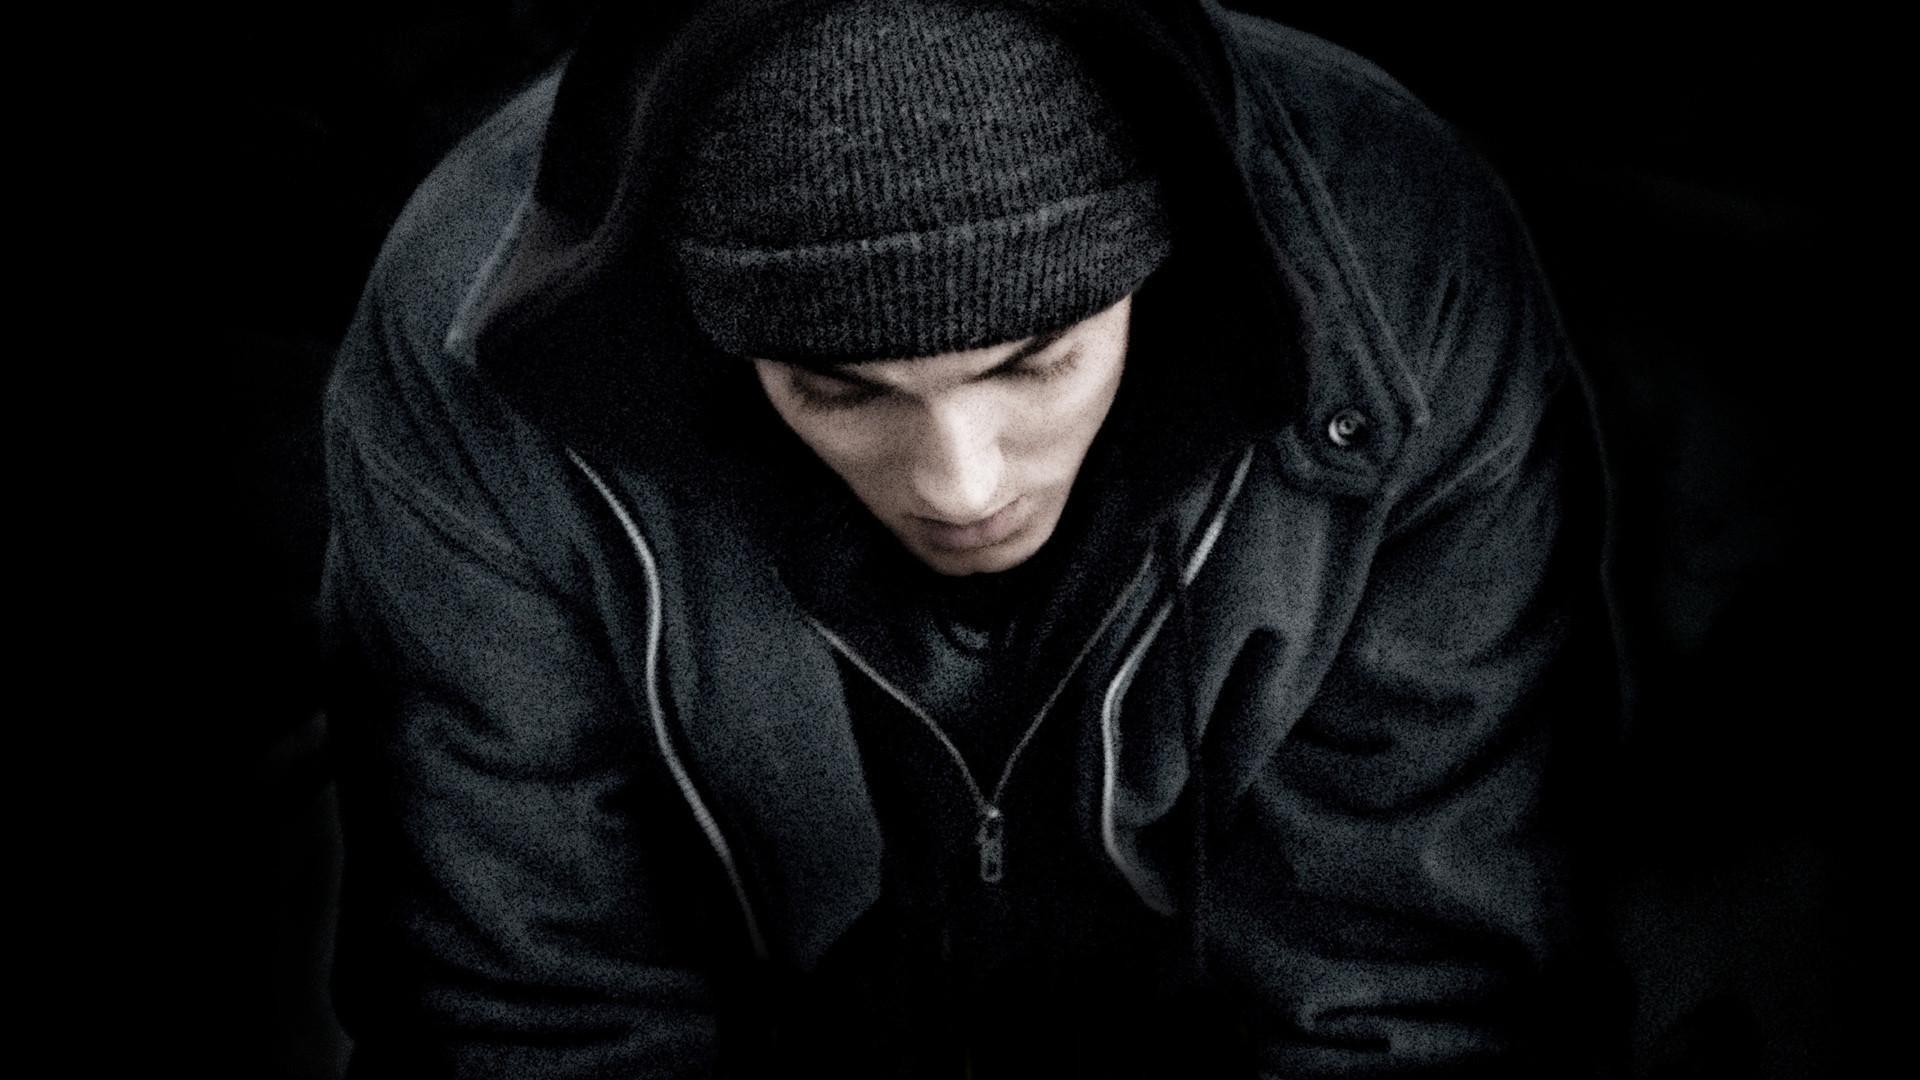 Photo Collection Eminem Wallpapers 8 Mile